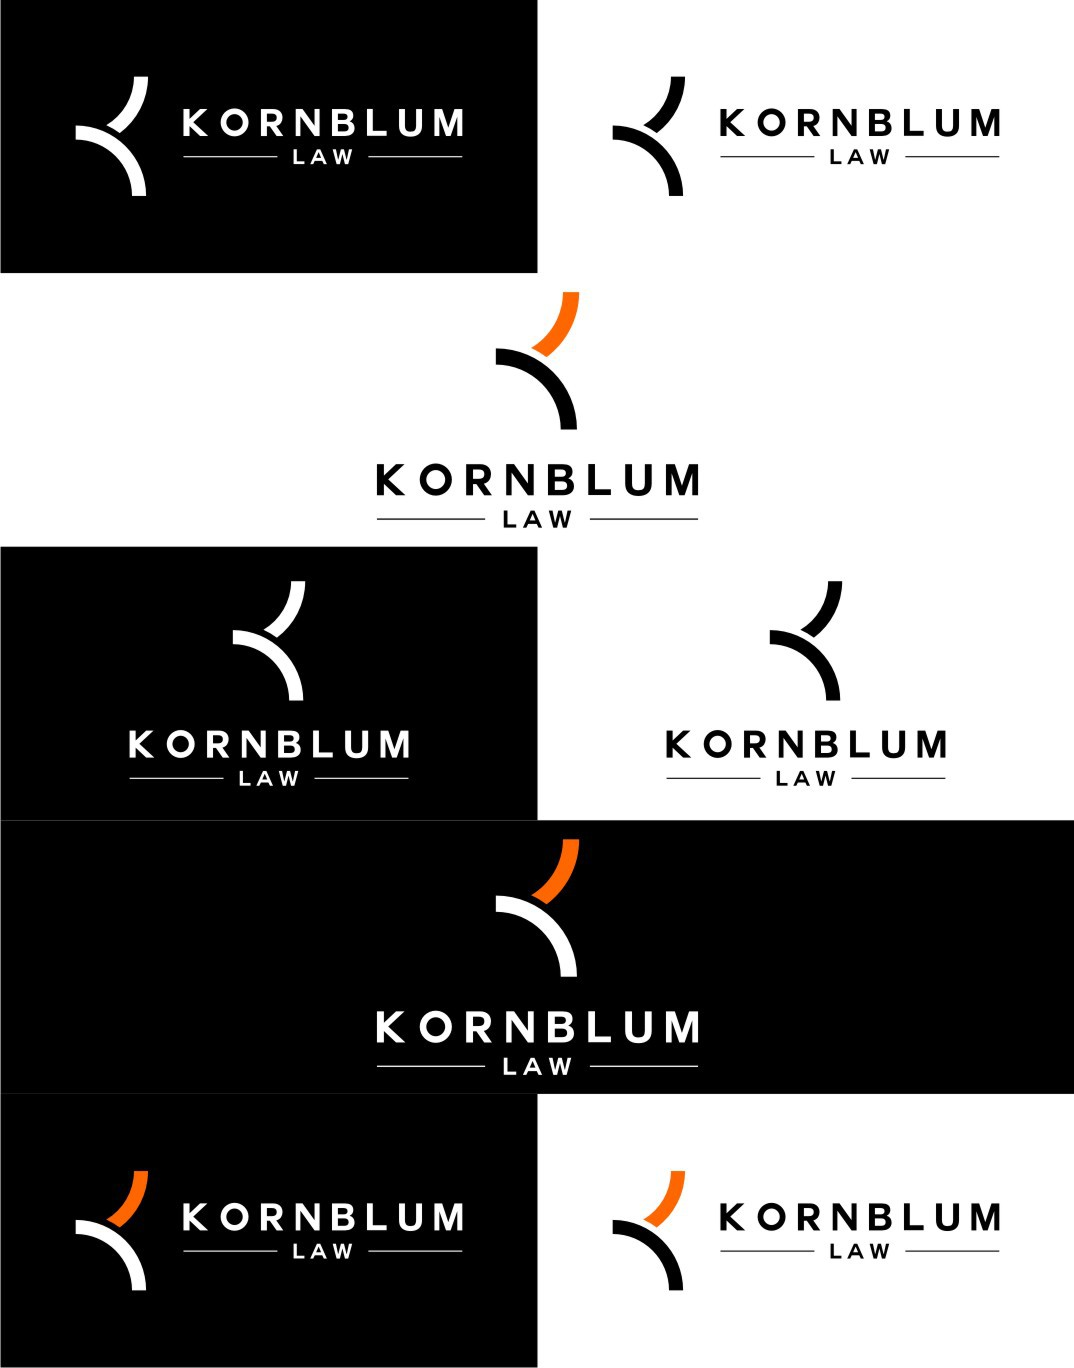 Kornblum Law needs a new logo